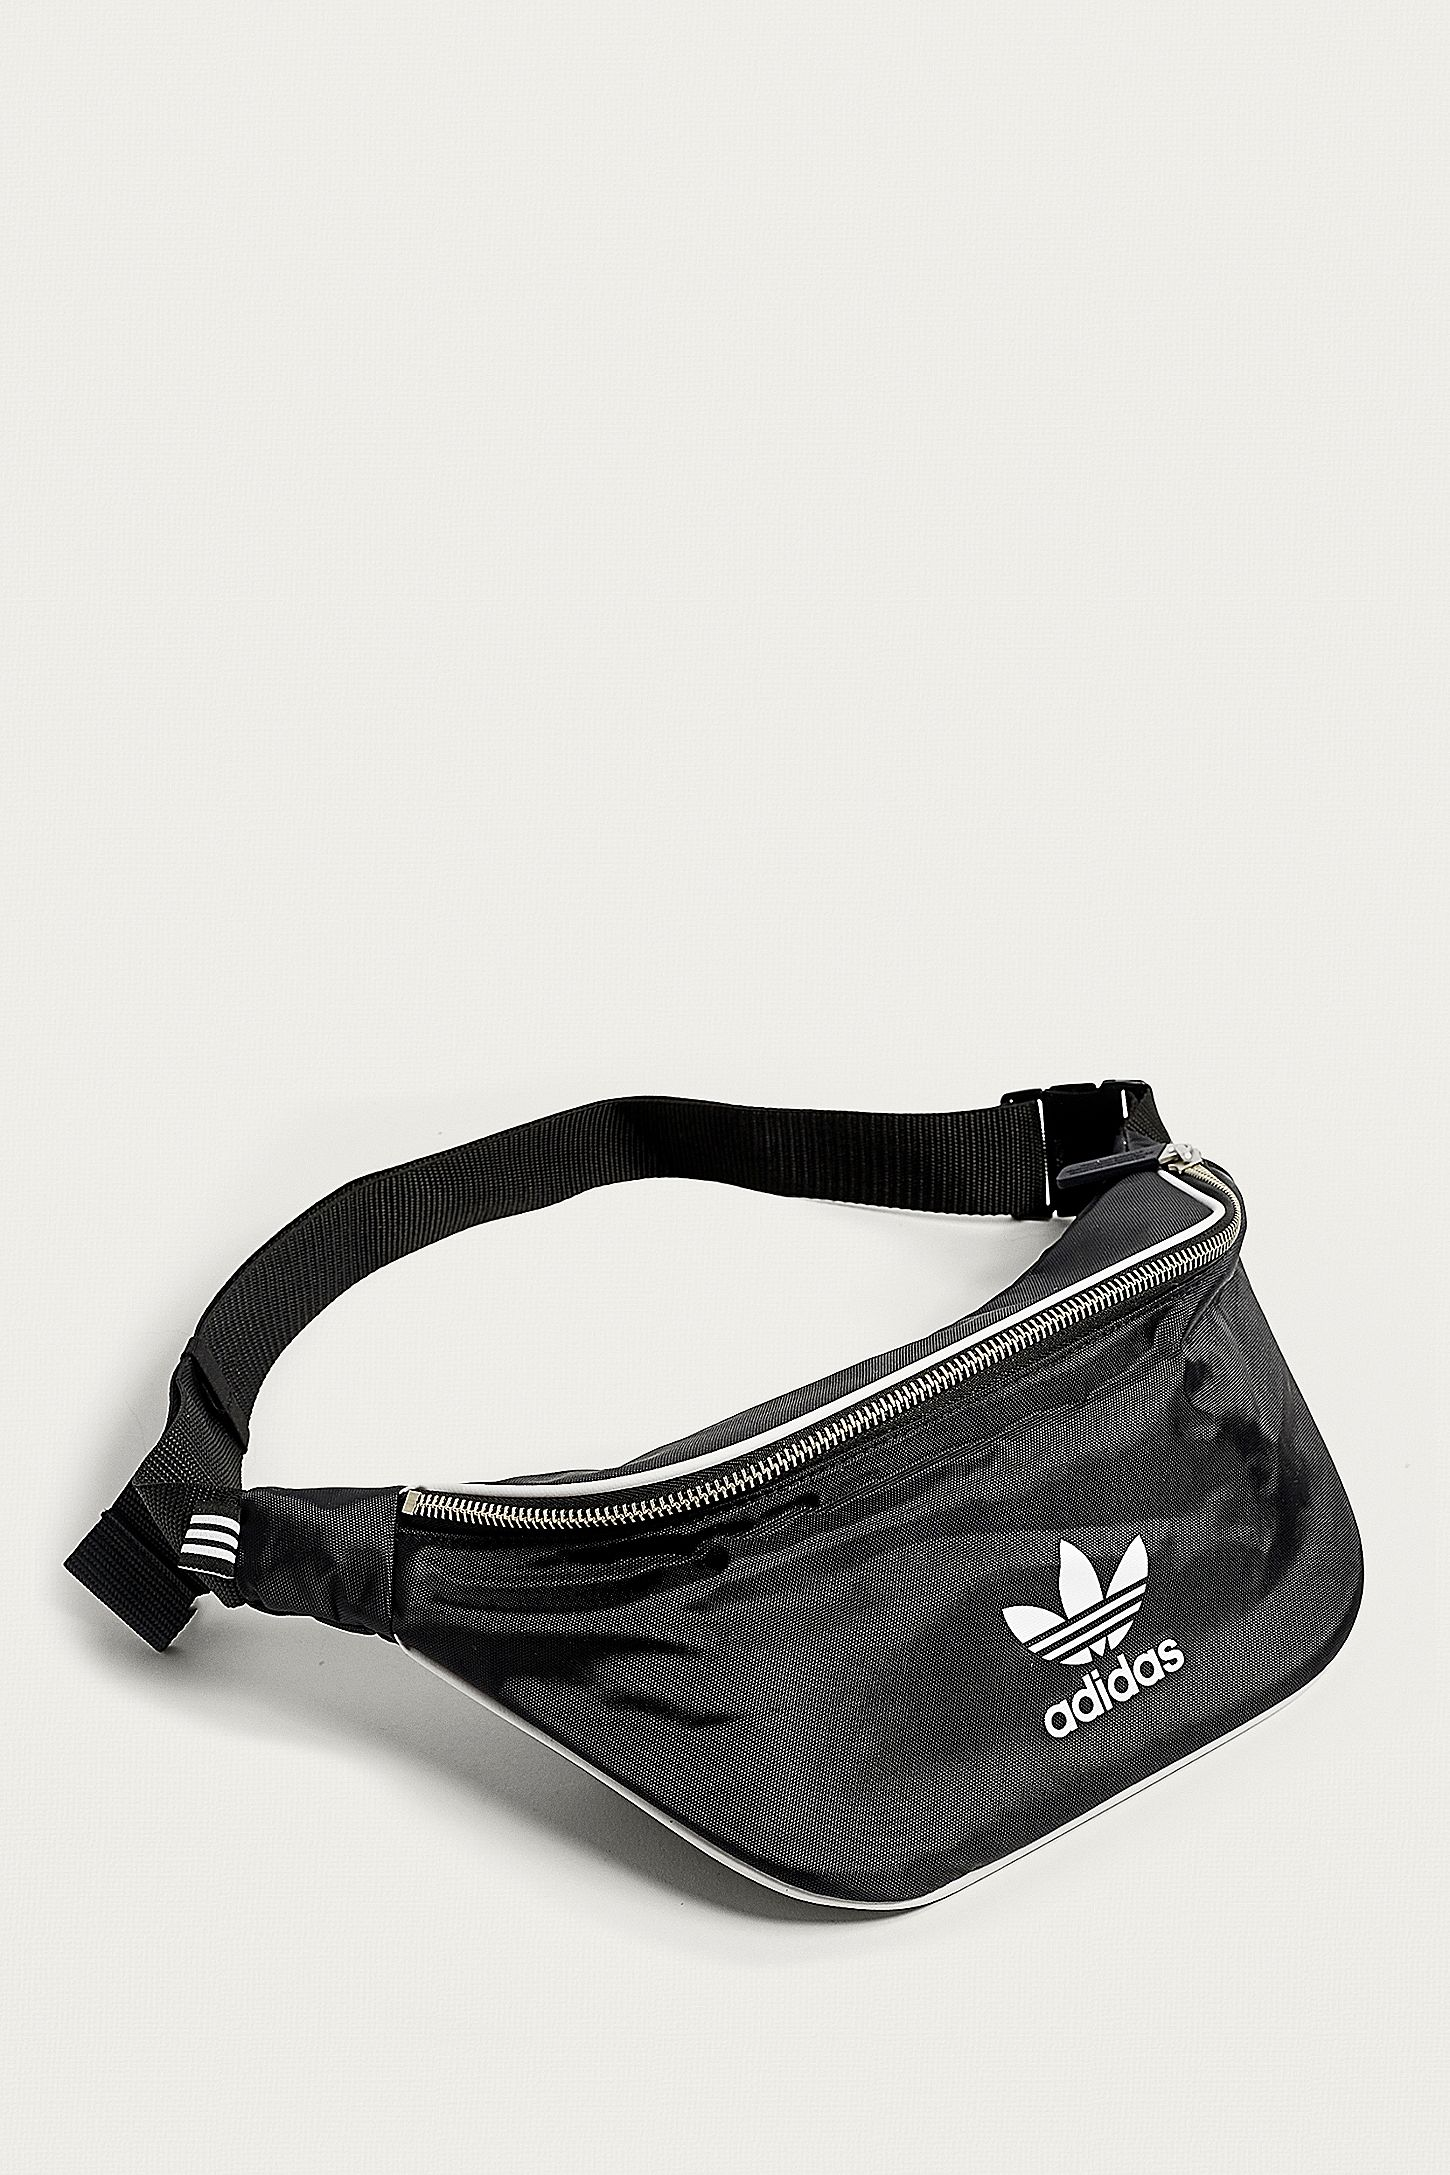 ee371982c1bb adidas Originals Black Logo Bum Bag. Click on image to zoom. Hover to zoom.  Double Tap to Zoom